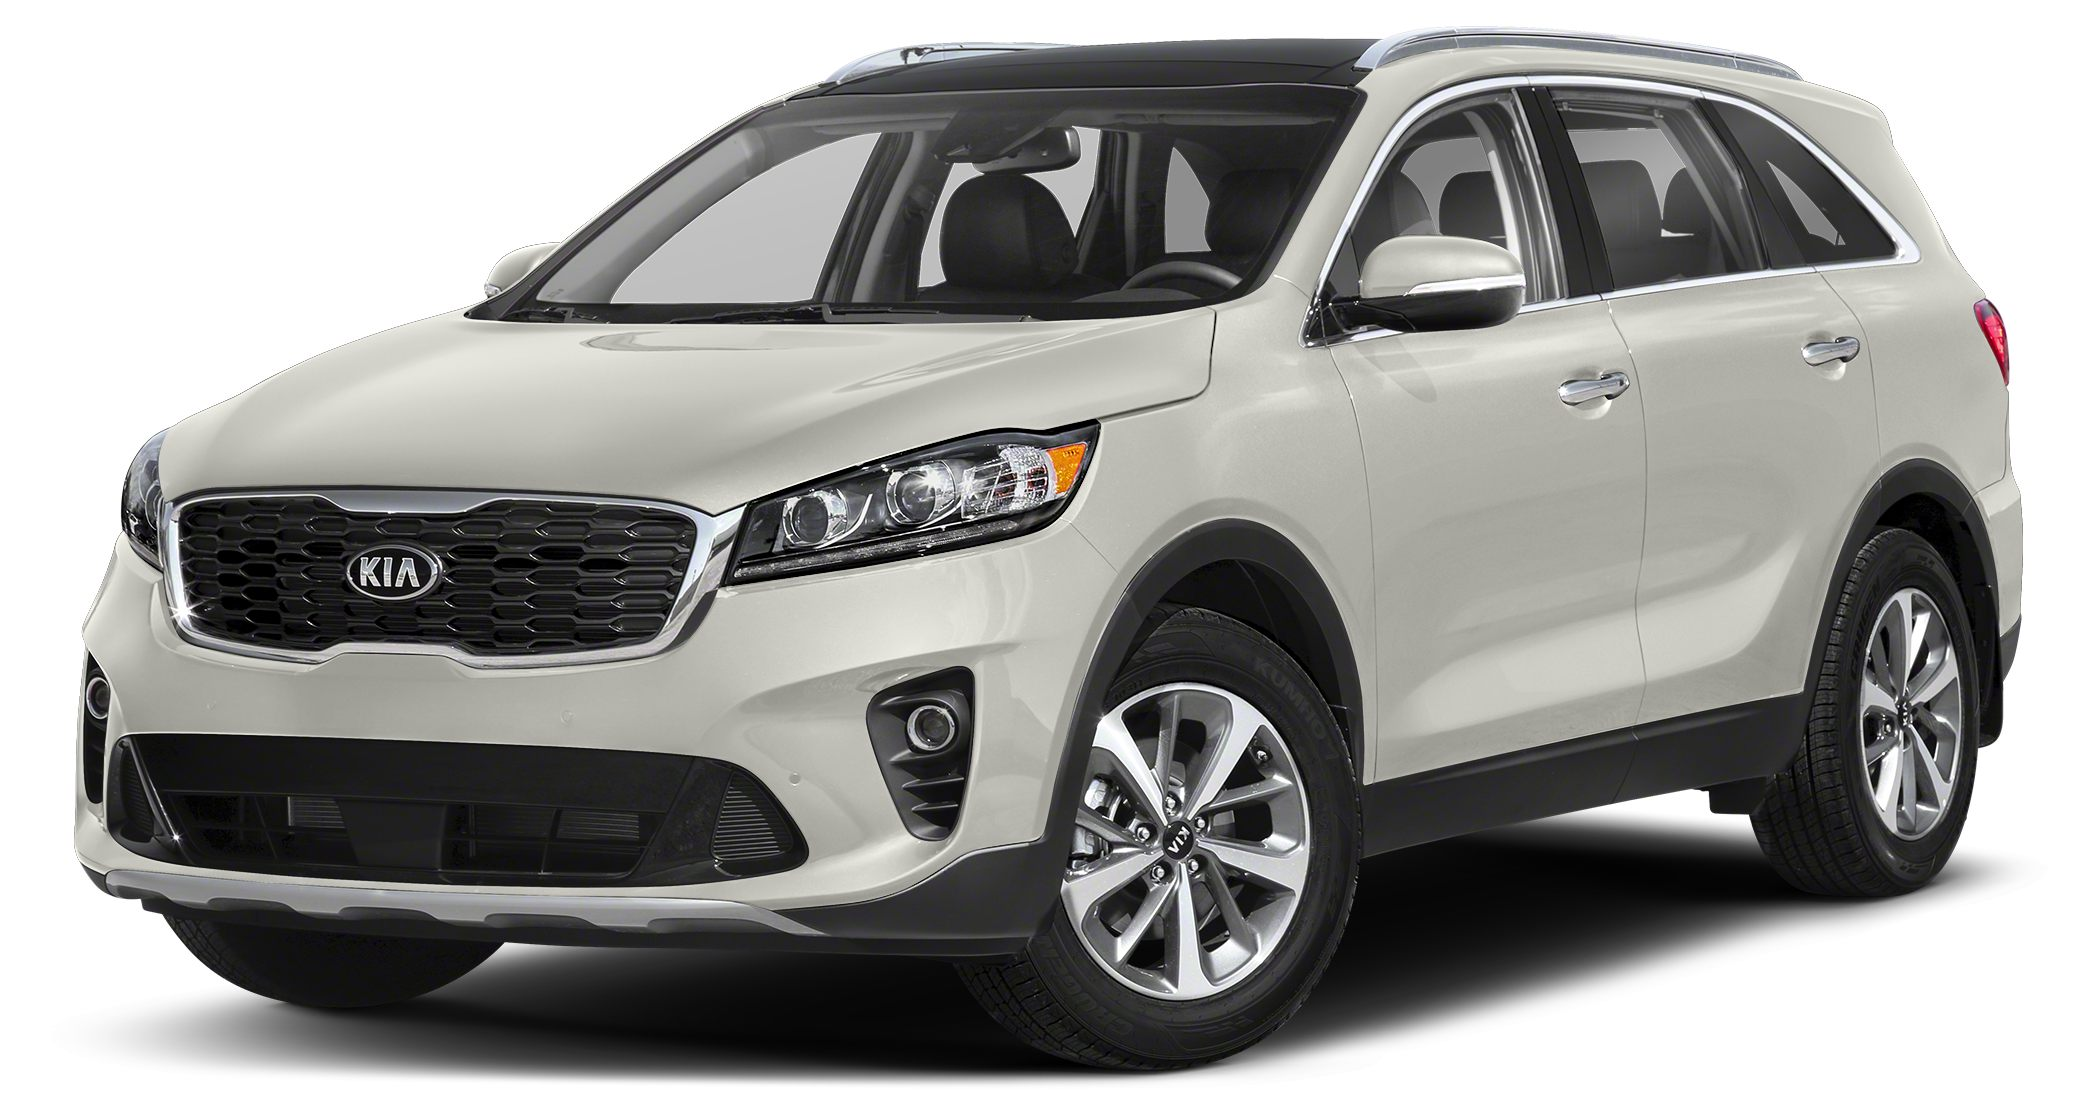 2019 Kia Sorento SXL All Around gem This wonderful 33L SXL is just waiting to bring the right